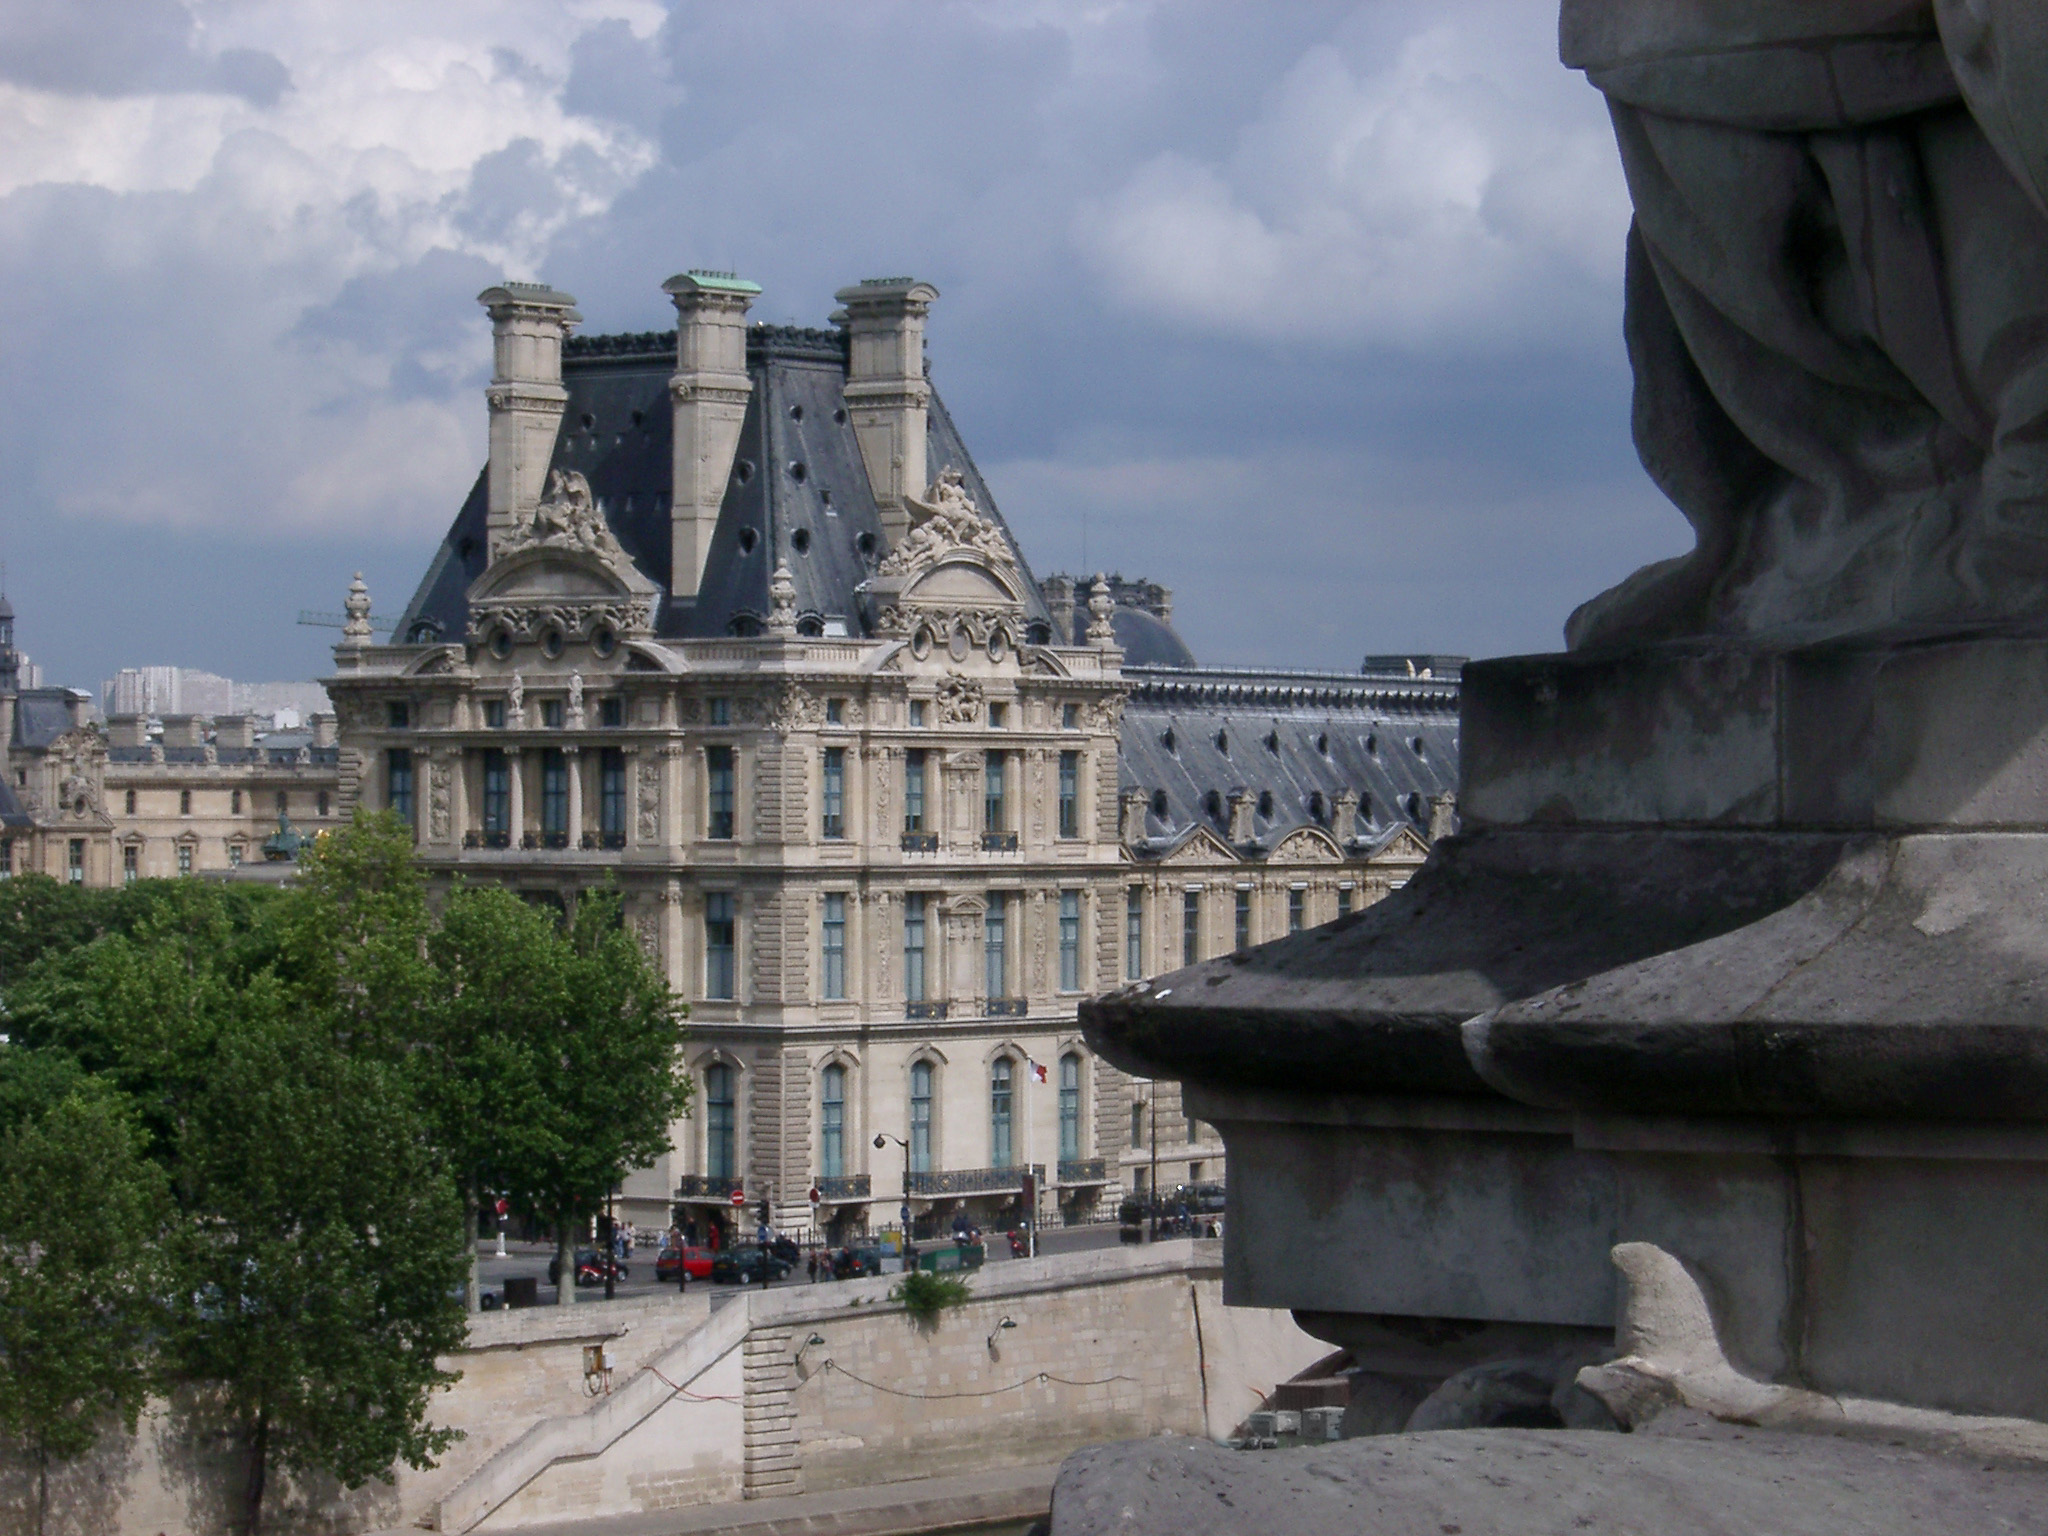 View from Roof of Musee de Orsay in Paris, France